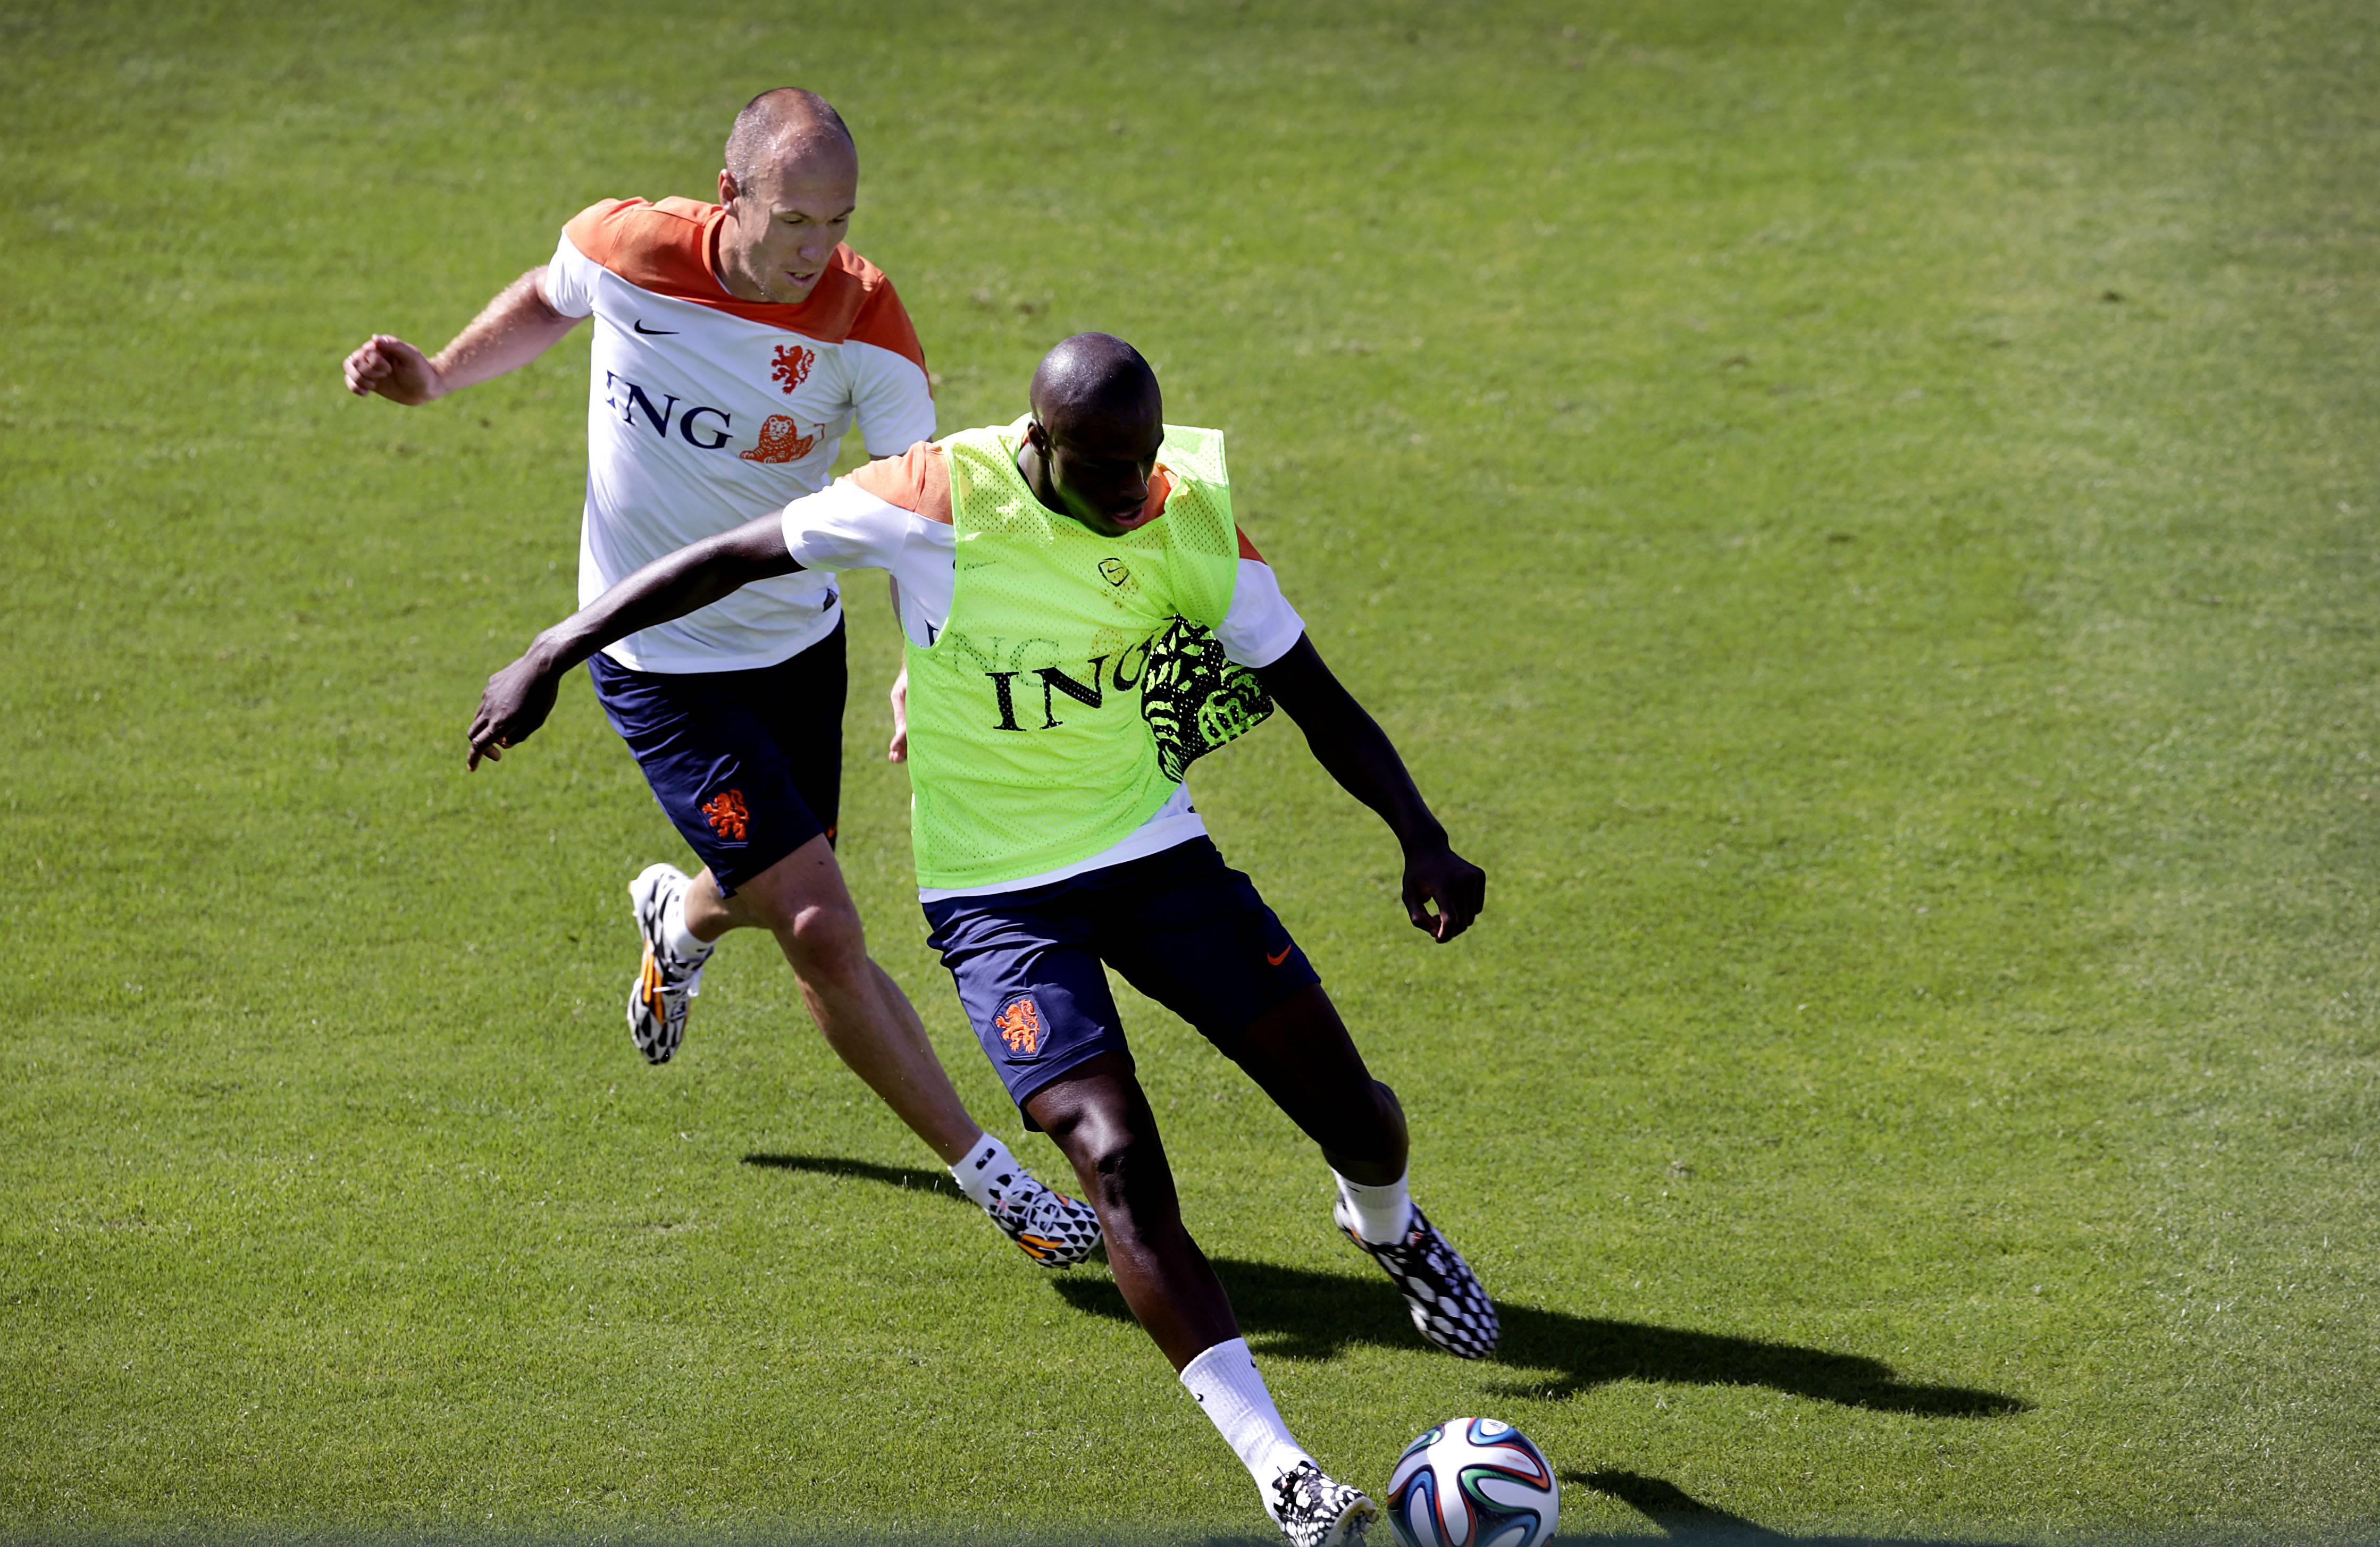 Arjen Robben, left, and Bruno Martins Indi from the Netherlands soccer team run after the ball during a training session Sunday in Rio de Janeiro, Brazil. There is no love lost between the two players.